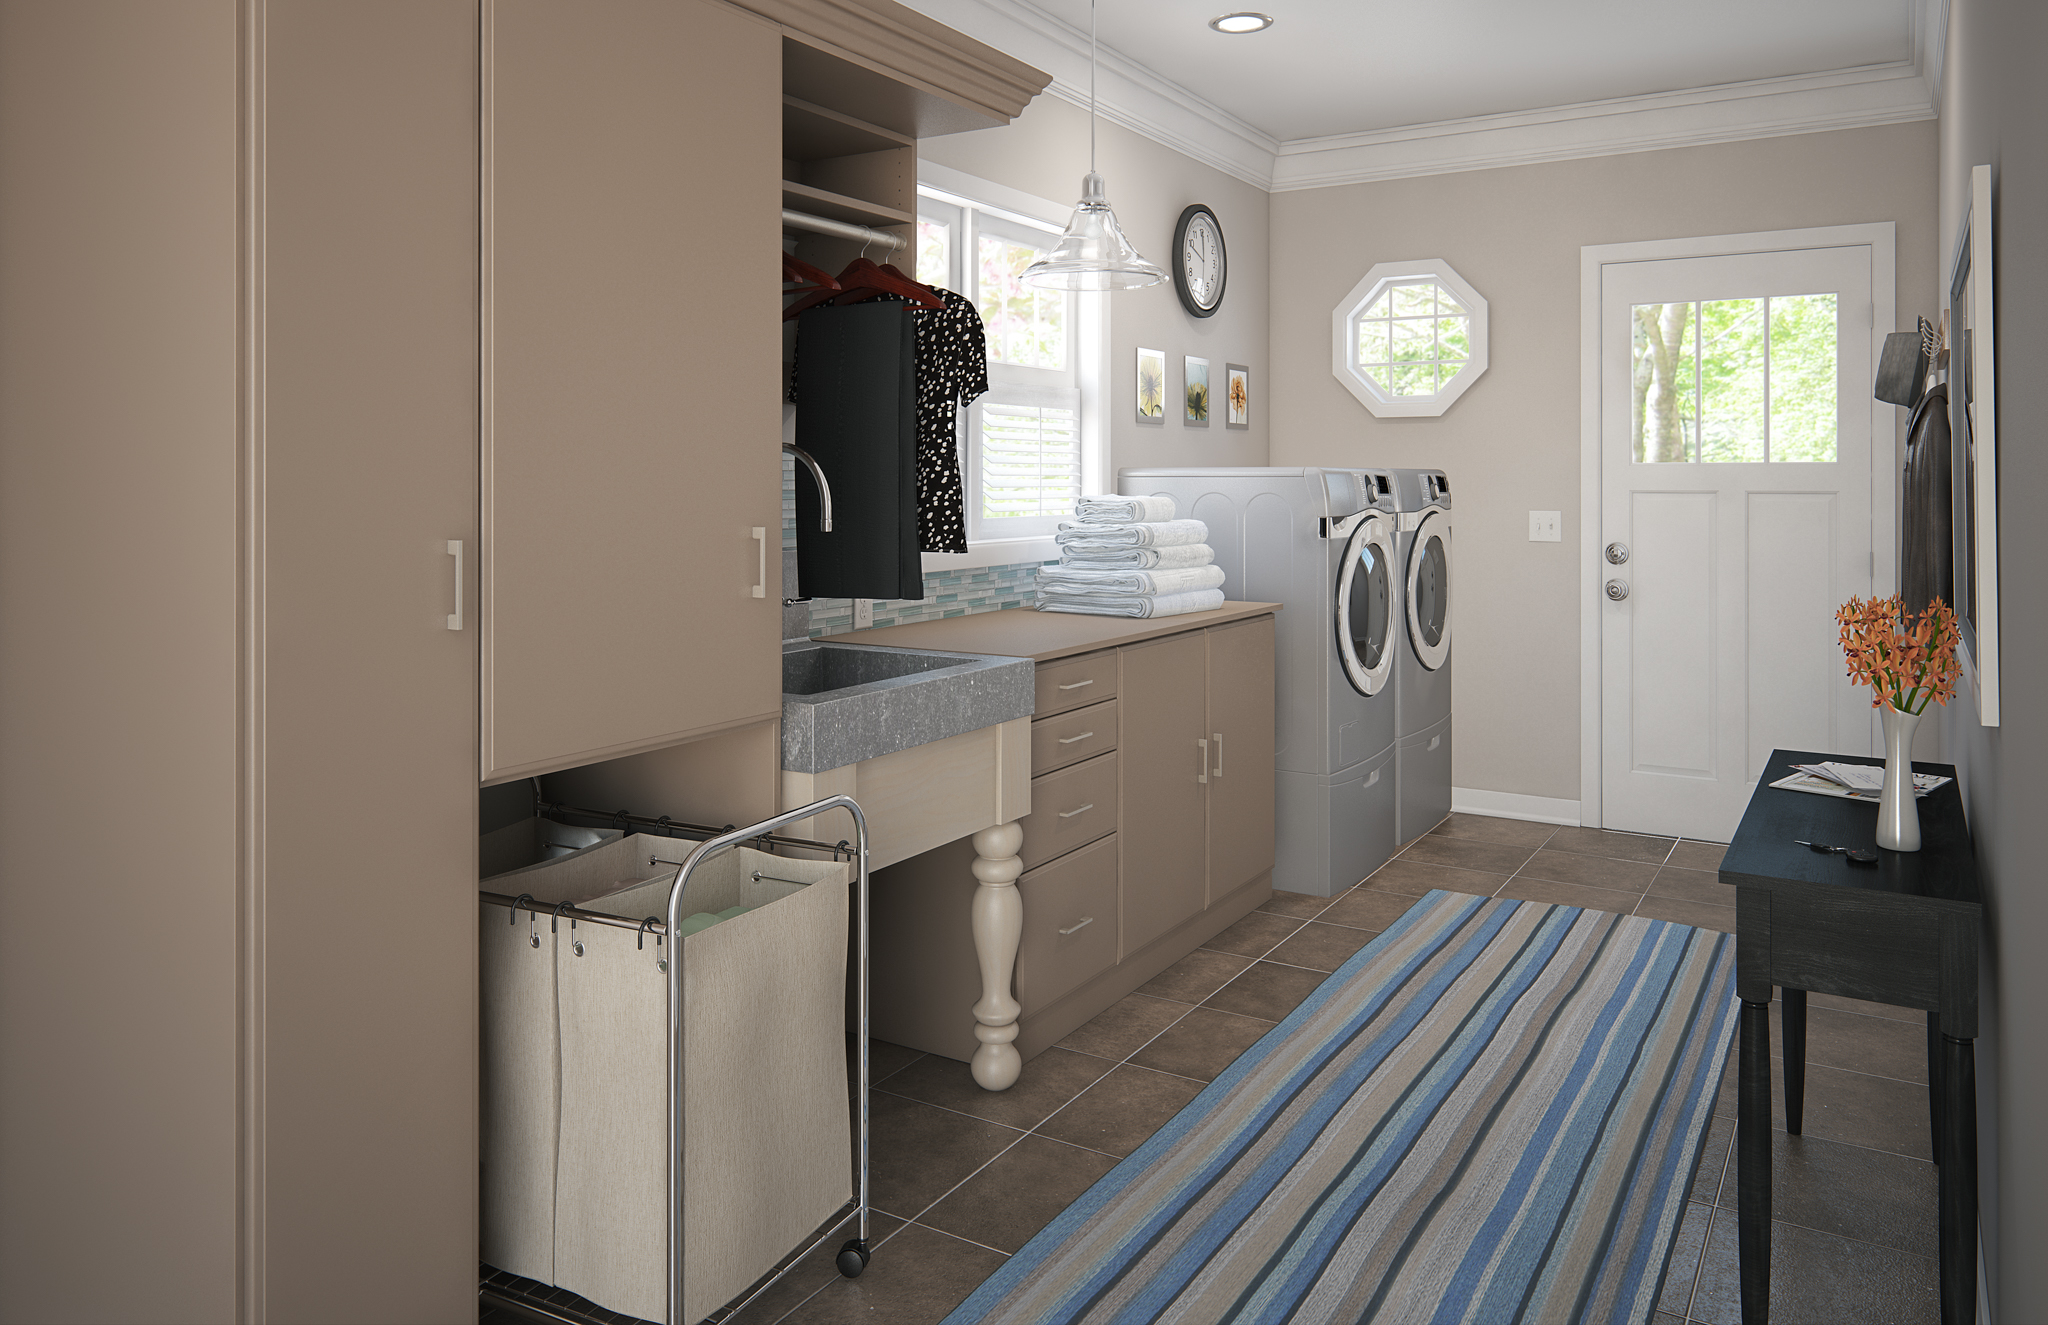 ... Laundry Room More Pleasant And Efficient With Smart Storage Solutions.  Open Shelving Keeps Commonly Used Cleaning Supplies Close At Hand, ...